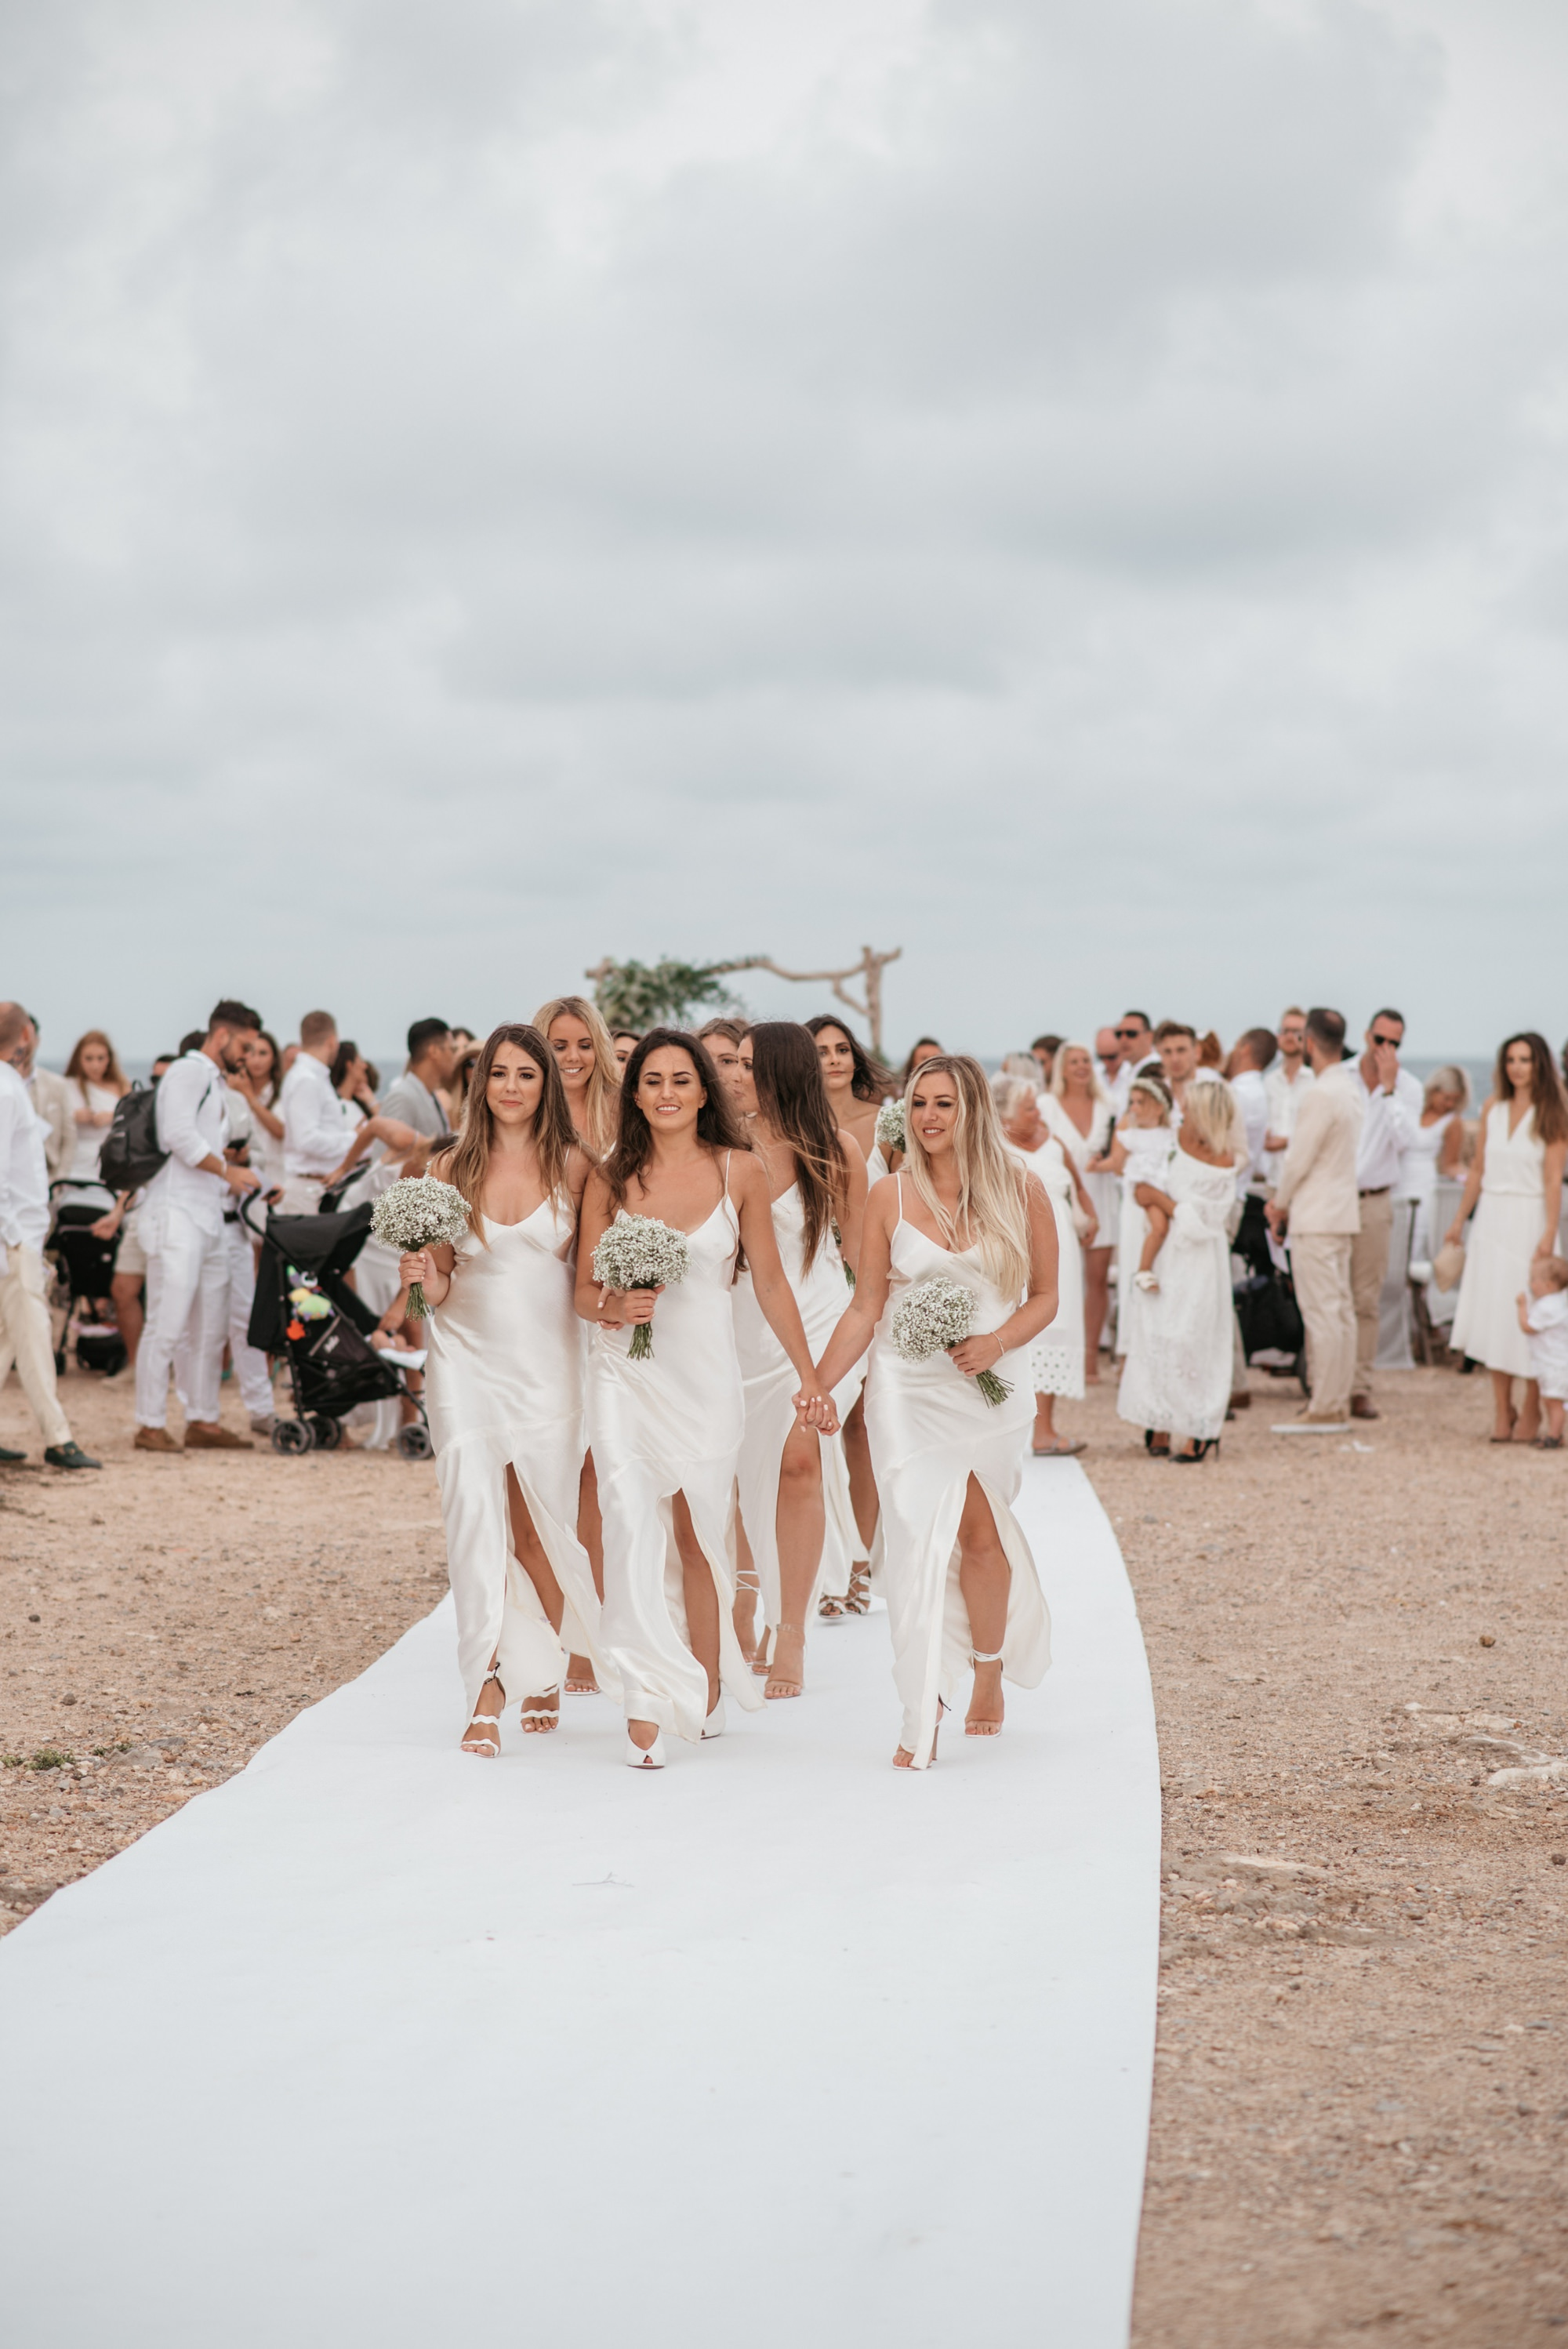 natural wedding photo destination la escollera ibiza 0075 1